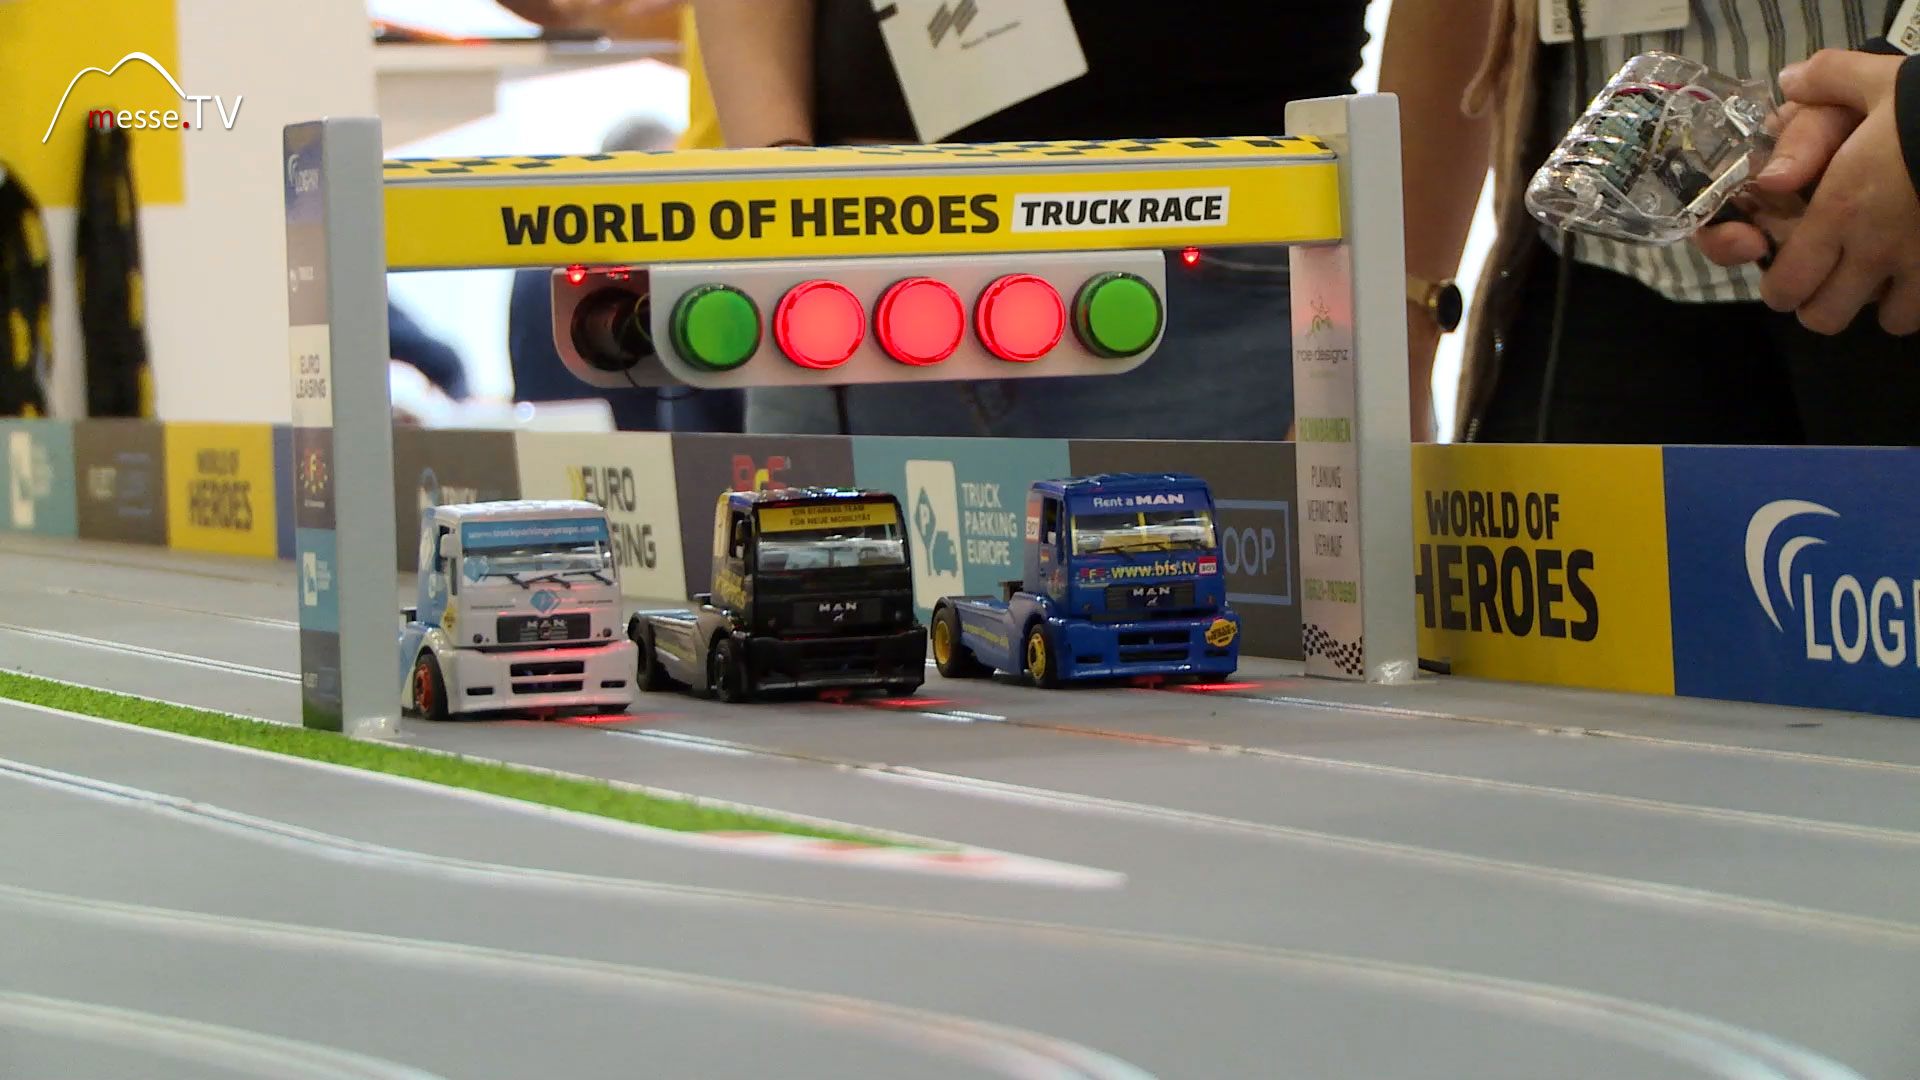 TRUCK JOBS World of Heroes transport logistic Messe München